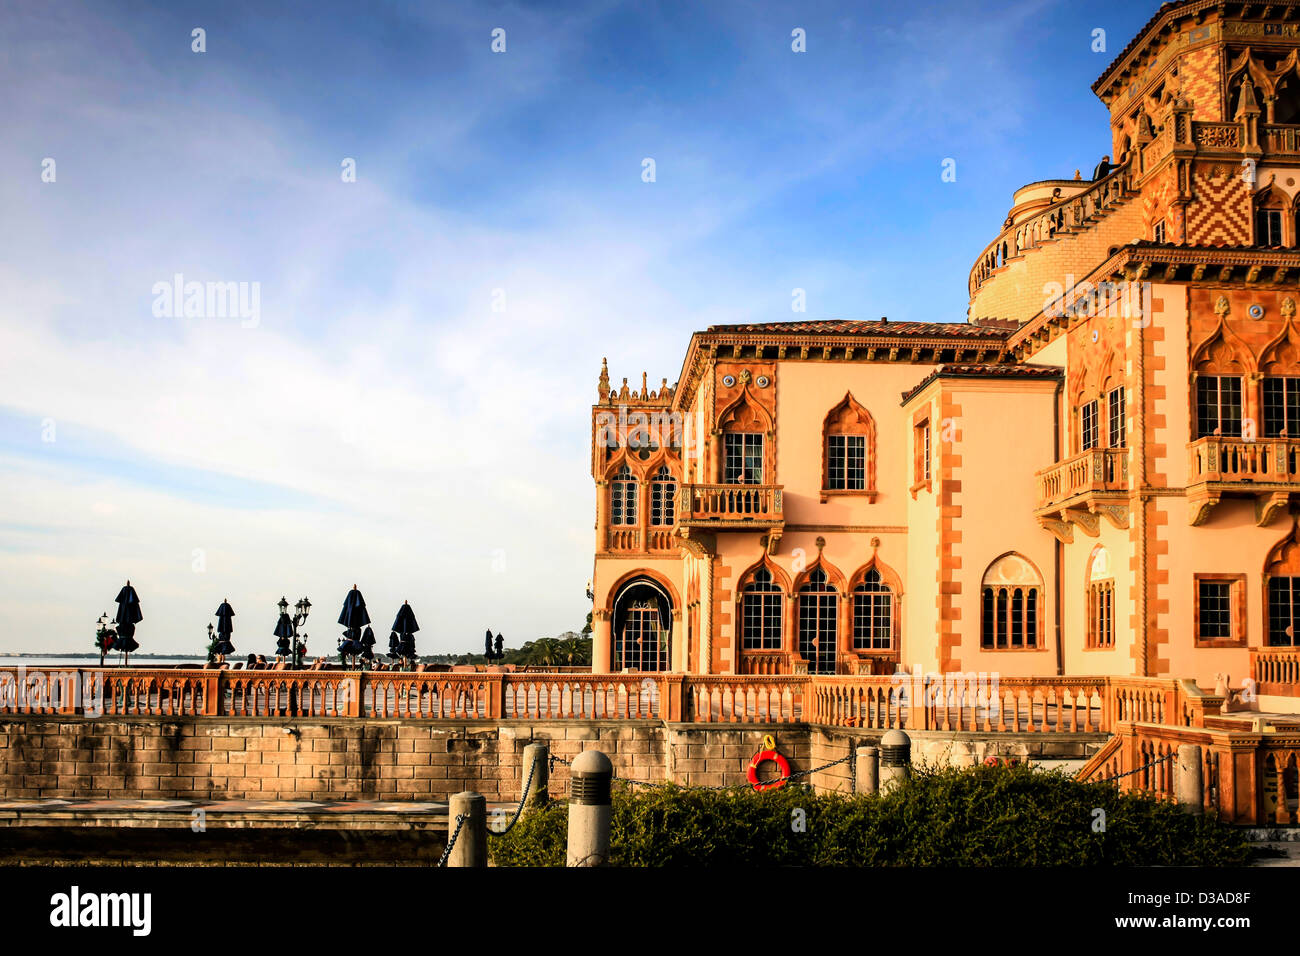 The Ca d' Zan Mansion in Sarasota FL. Home of John and Mabel Ringling. Stock Photo